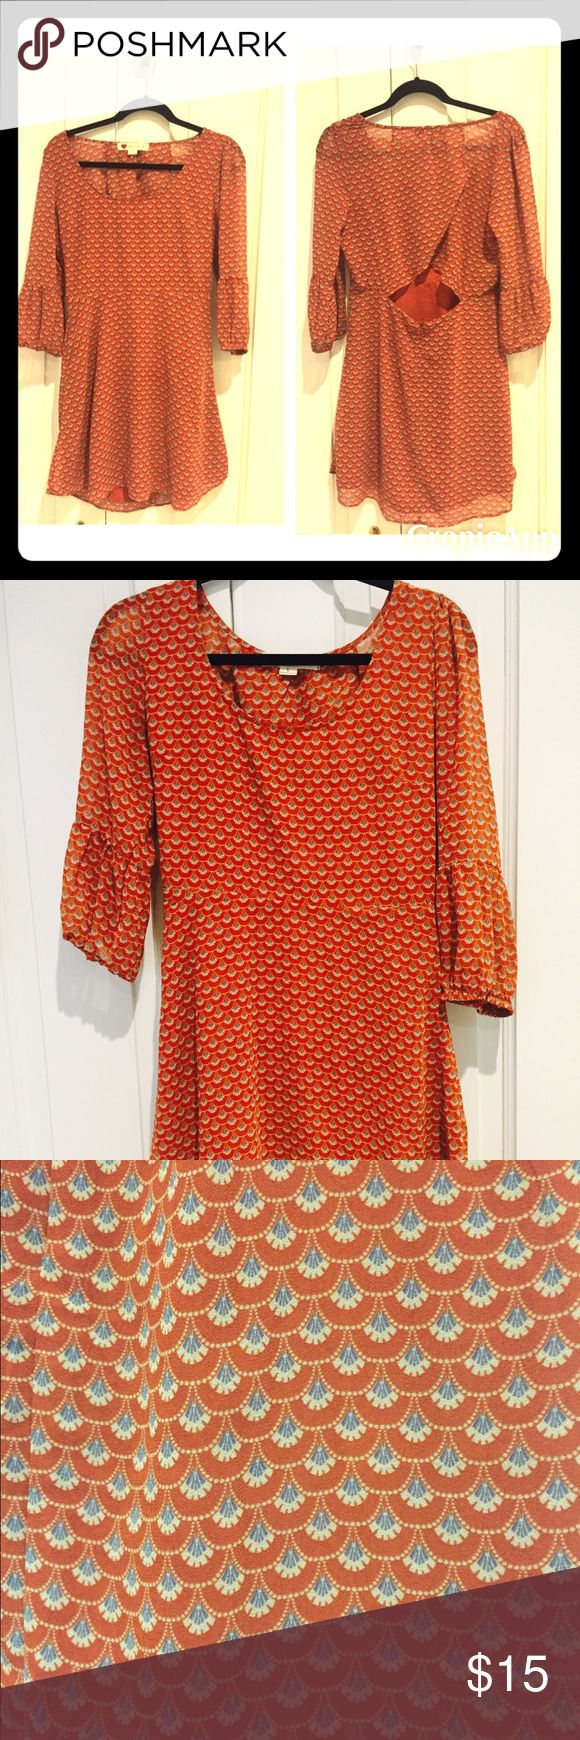 Size L Festival Open back Rust Dress Have worn this dress only 2 times but clearing out my closet. In perfect condition. It's the perfect festival dress and has a peek a boo / open back for that blissful breeze during a hot day at a music festival! It's a gorgeous rust color and playful pattern, due to its color tone, it can definitely be worn in any season! one clothing Dresses Mini